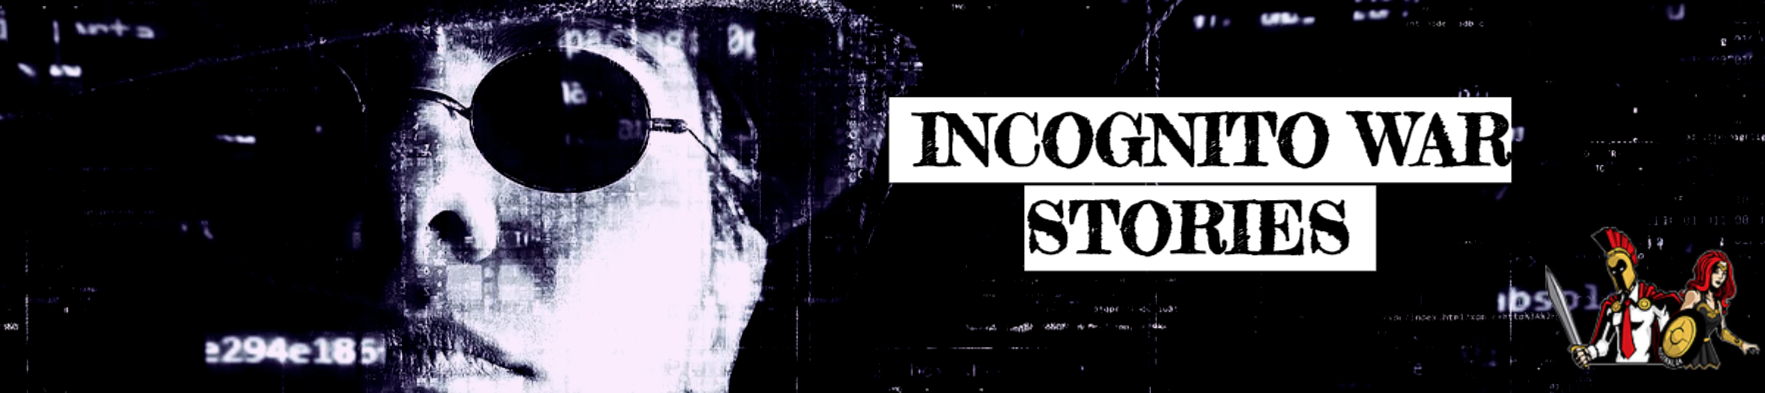 Incognito War Stories